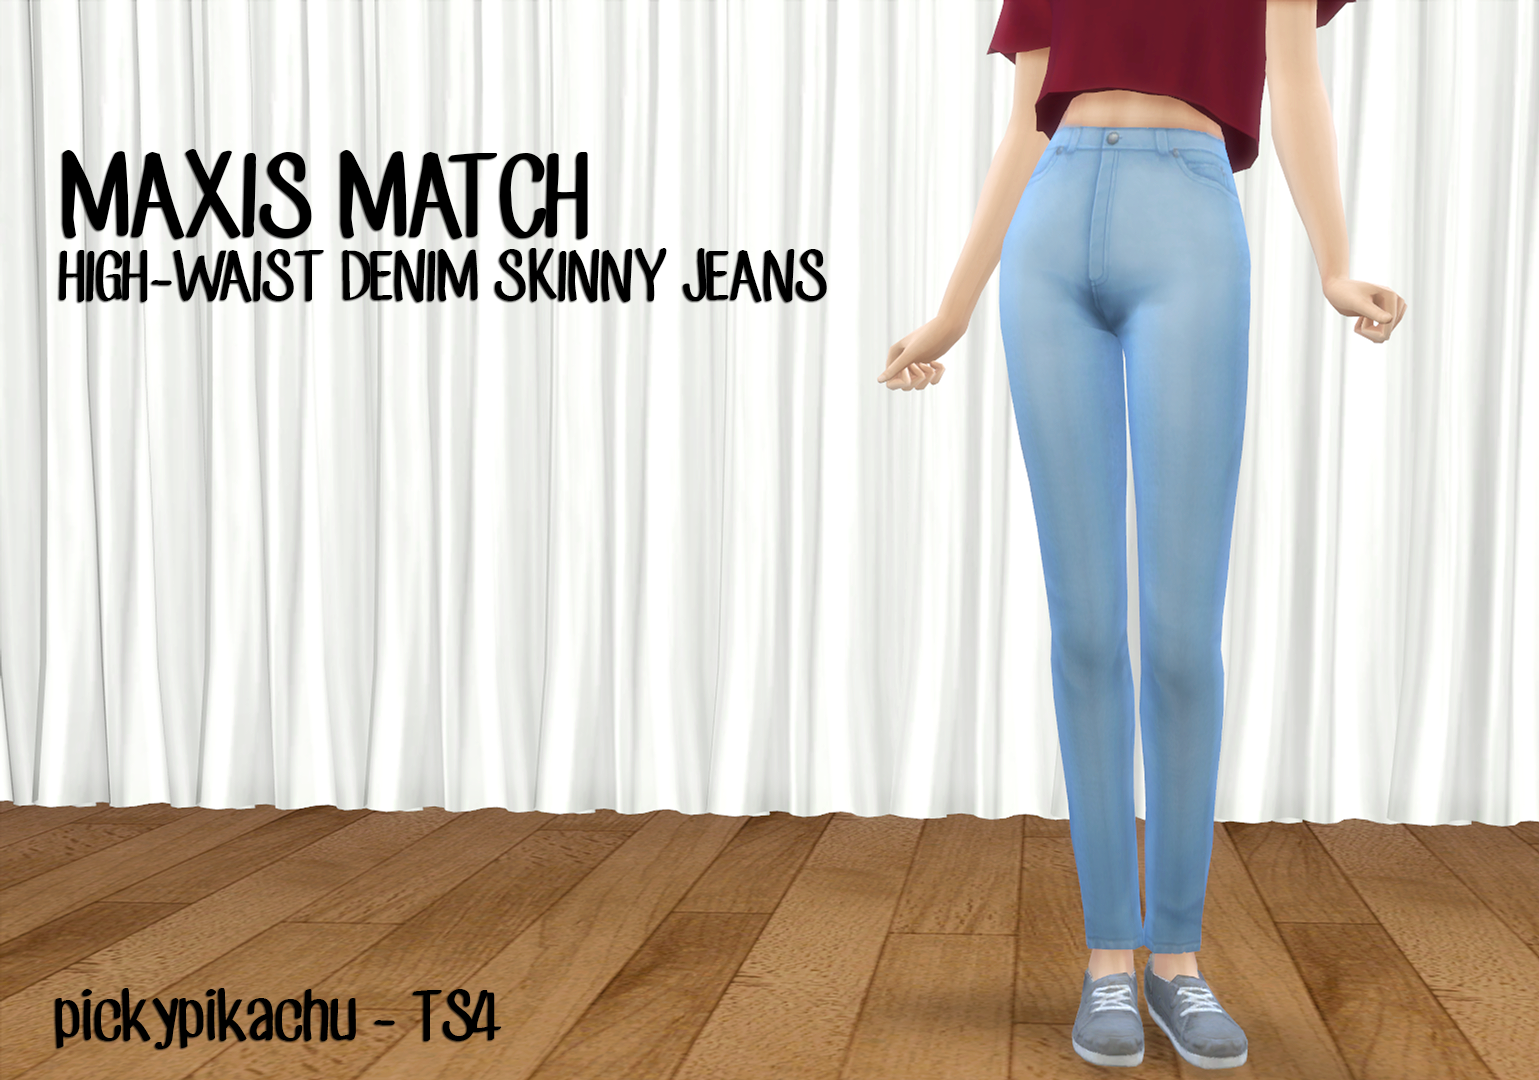 Maxis Match High-Waist Denim Skinny Jeans for Teen - Elder Females by Pickypikachu